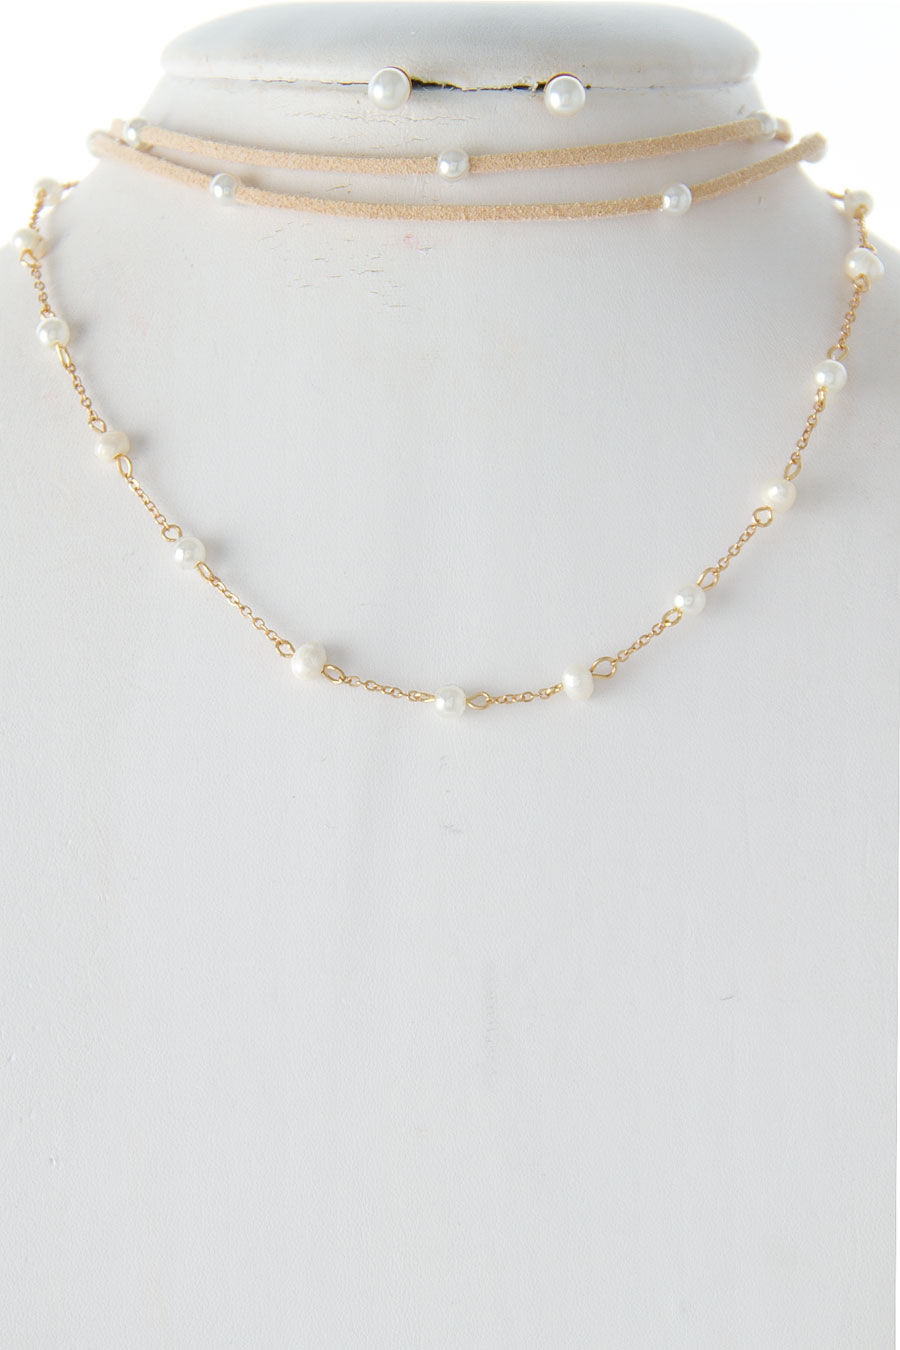 SUEDE PEARL CHOKER NECKLACE - orangeshine.com